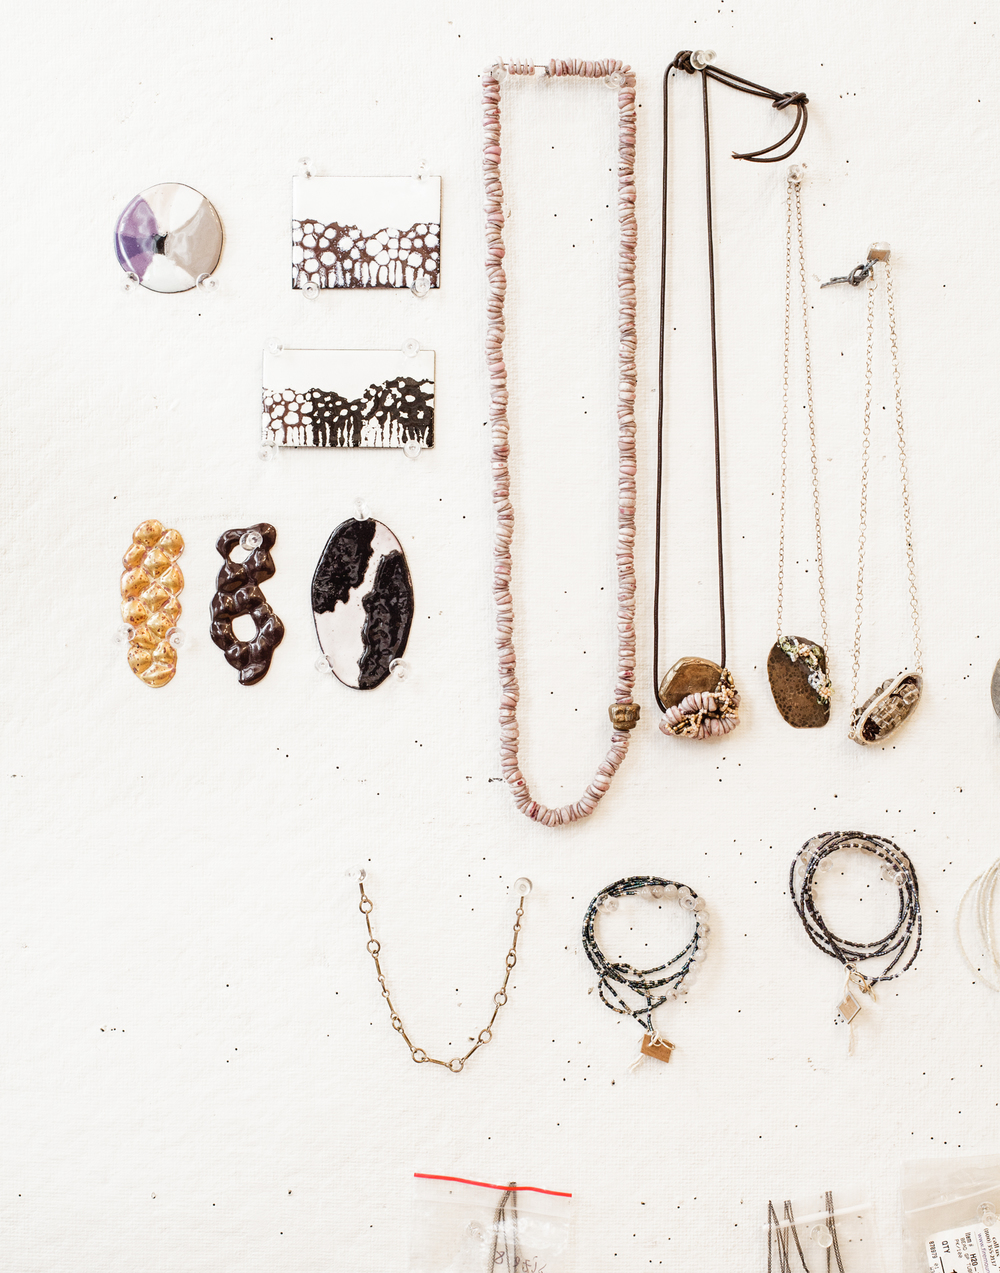 Detail from the jewelry designer Kerrie Yeung's studio.